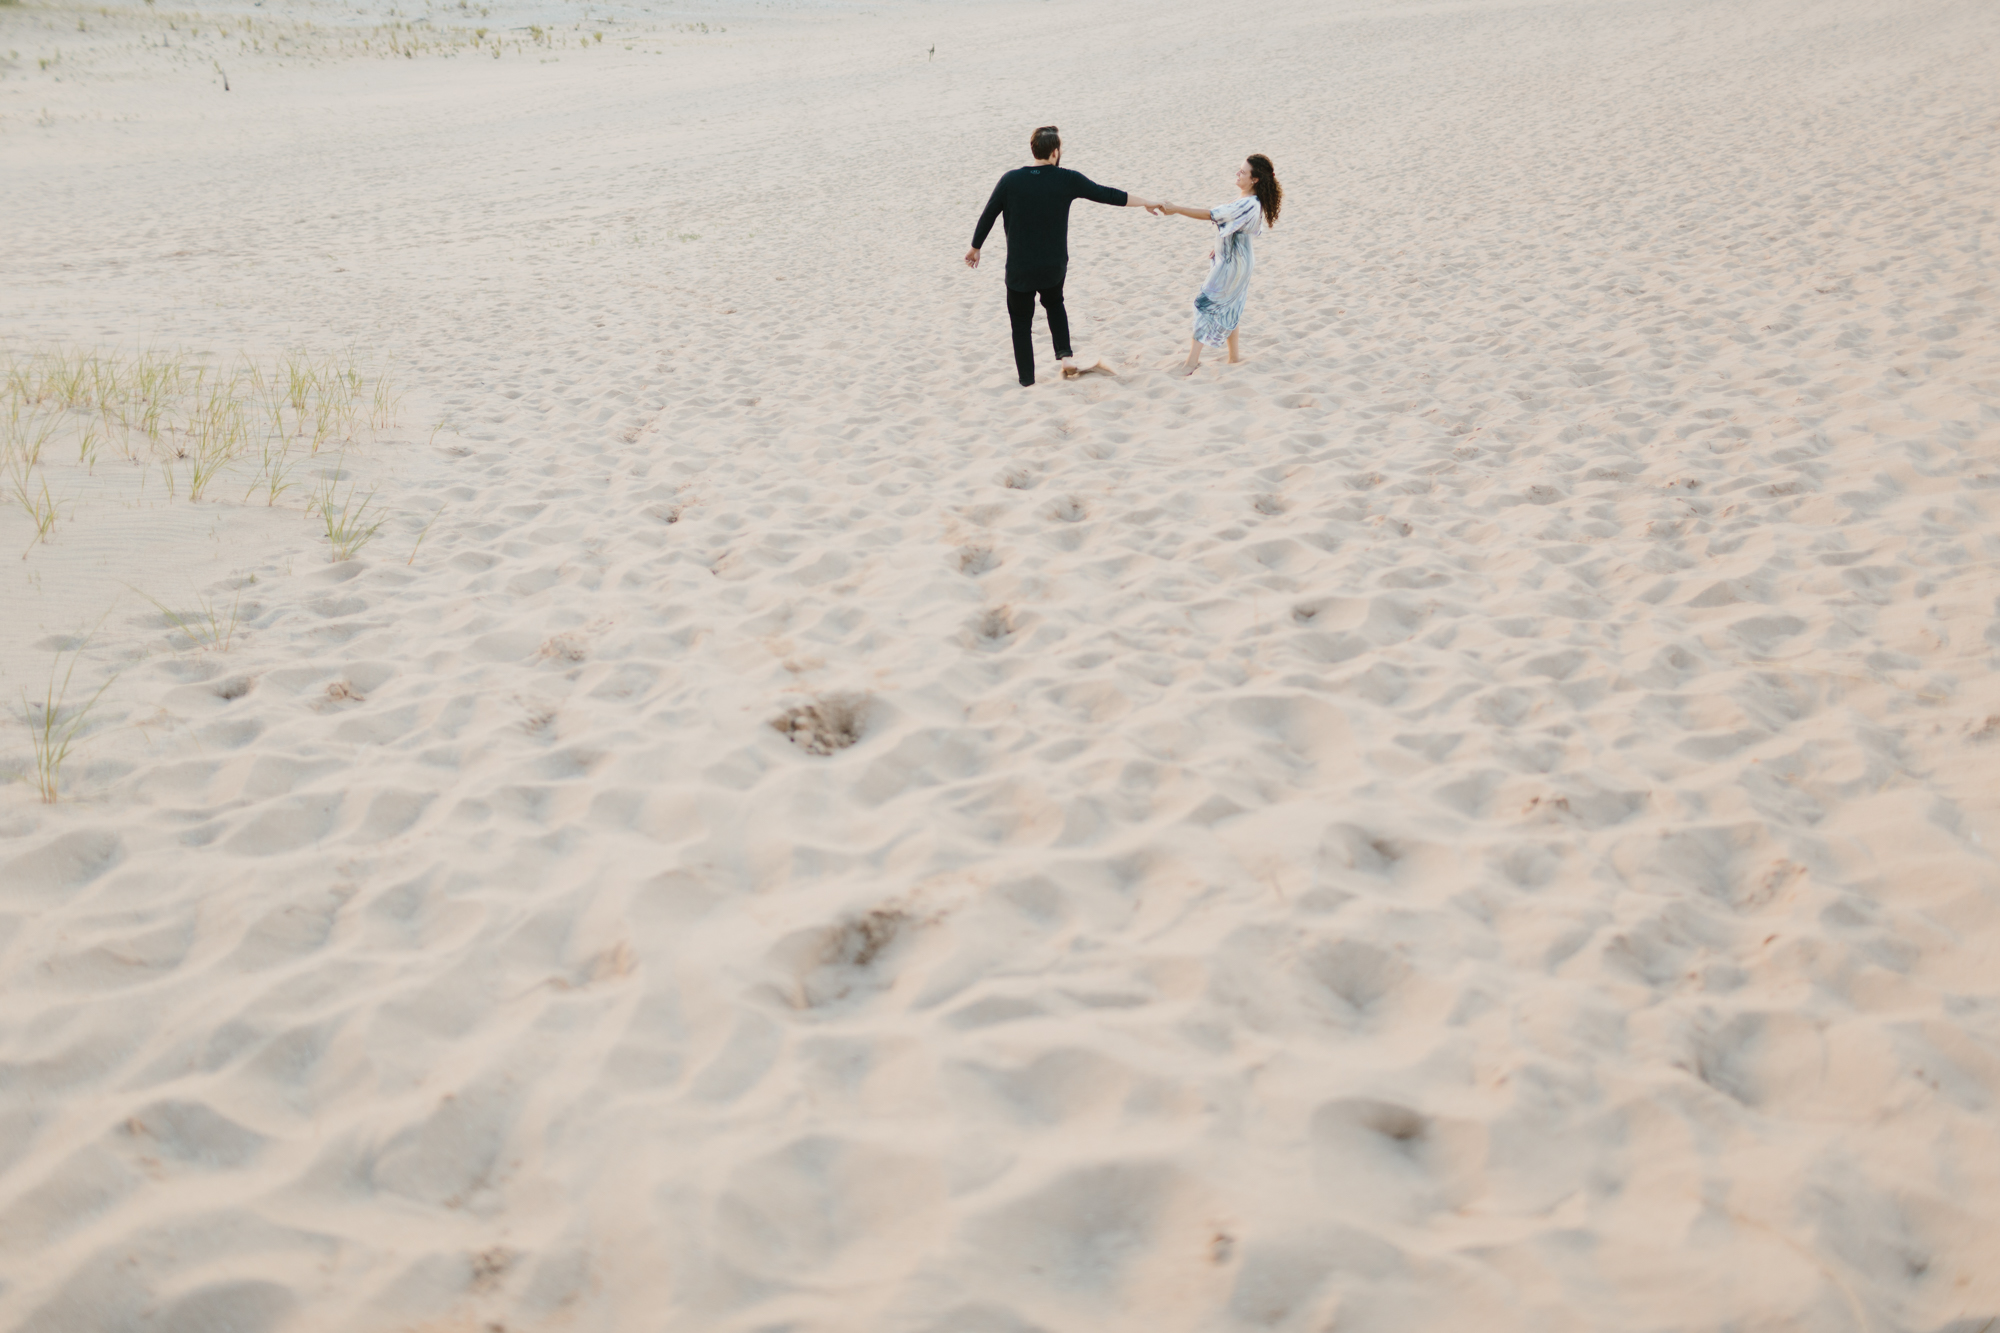 Northern Michigan Sleeping Bear Dunes Wedding Engagement Photographer Mae Stier-026.jpg